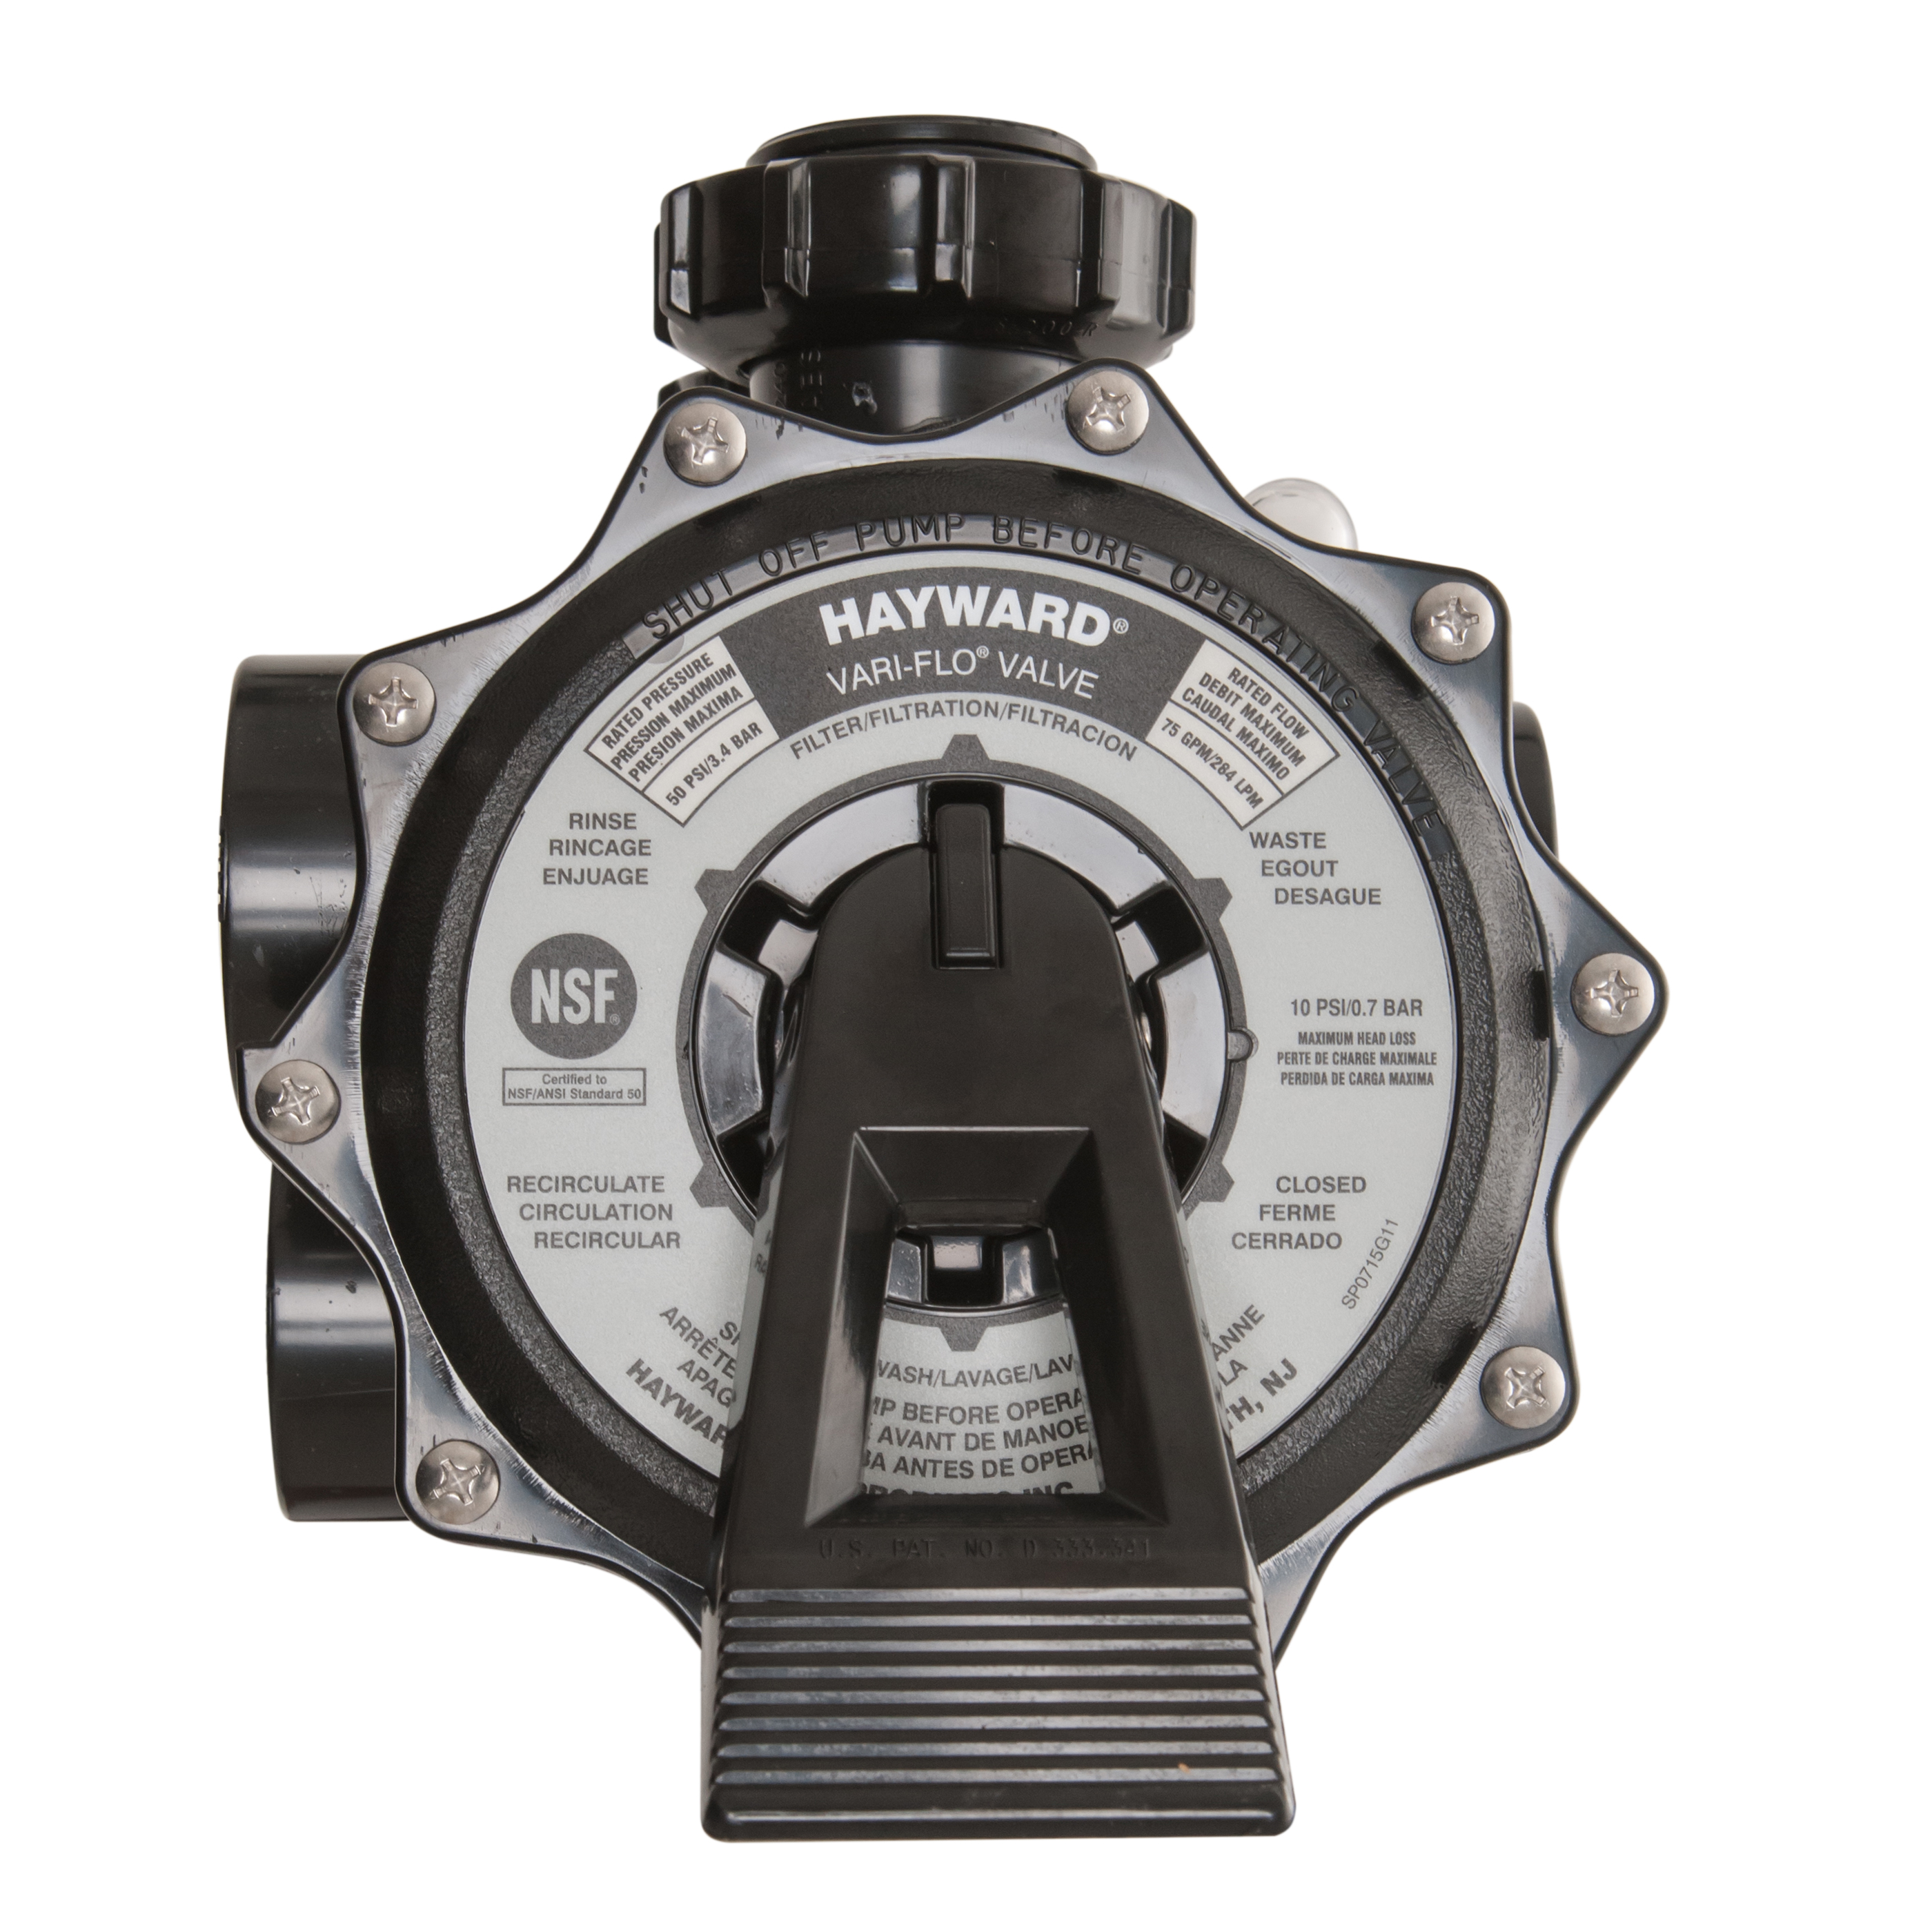 Hayward Sp0715x62 2 Quot Multiport Valve For Pro Series